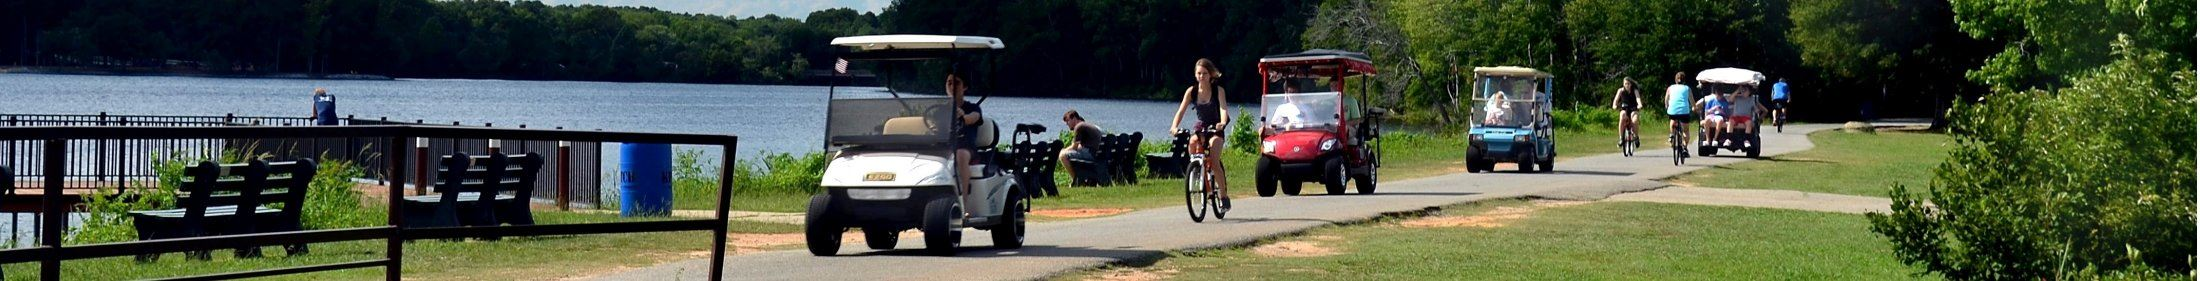 Paths and golf carts   Peachtree City, GA - Official Website